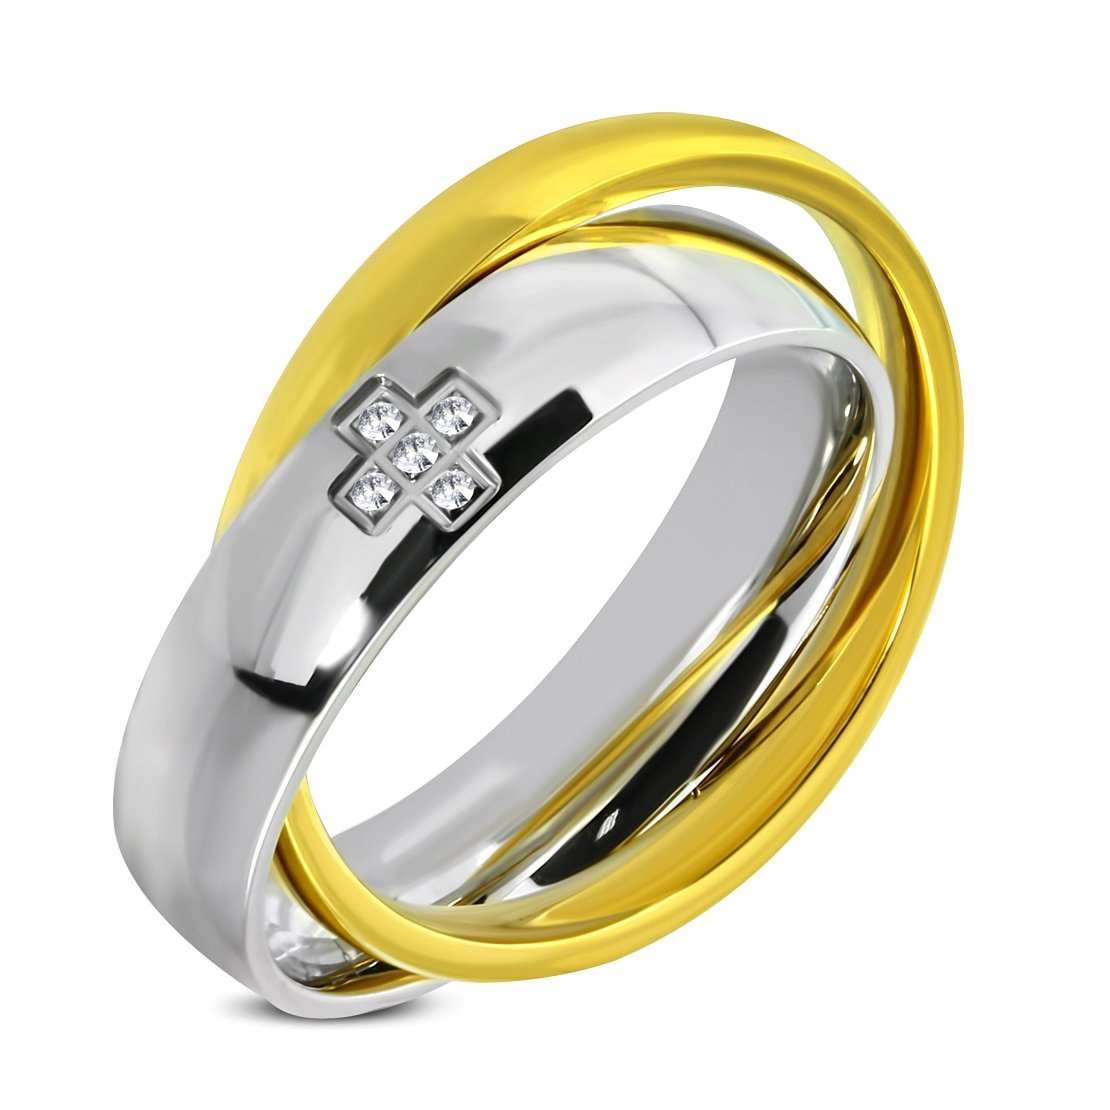 Stainless Steel 2 Color Plain Interlocking Greek Cross Comfort Fit Half-Round Wedding Band Ring with Clear CZ